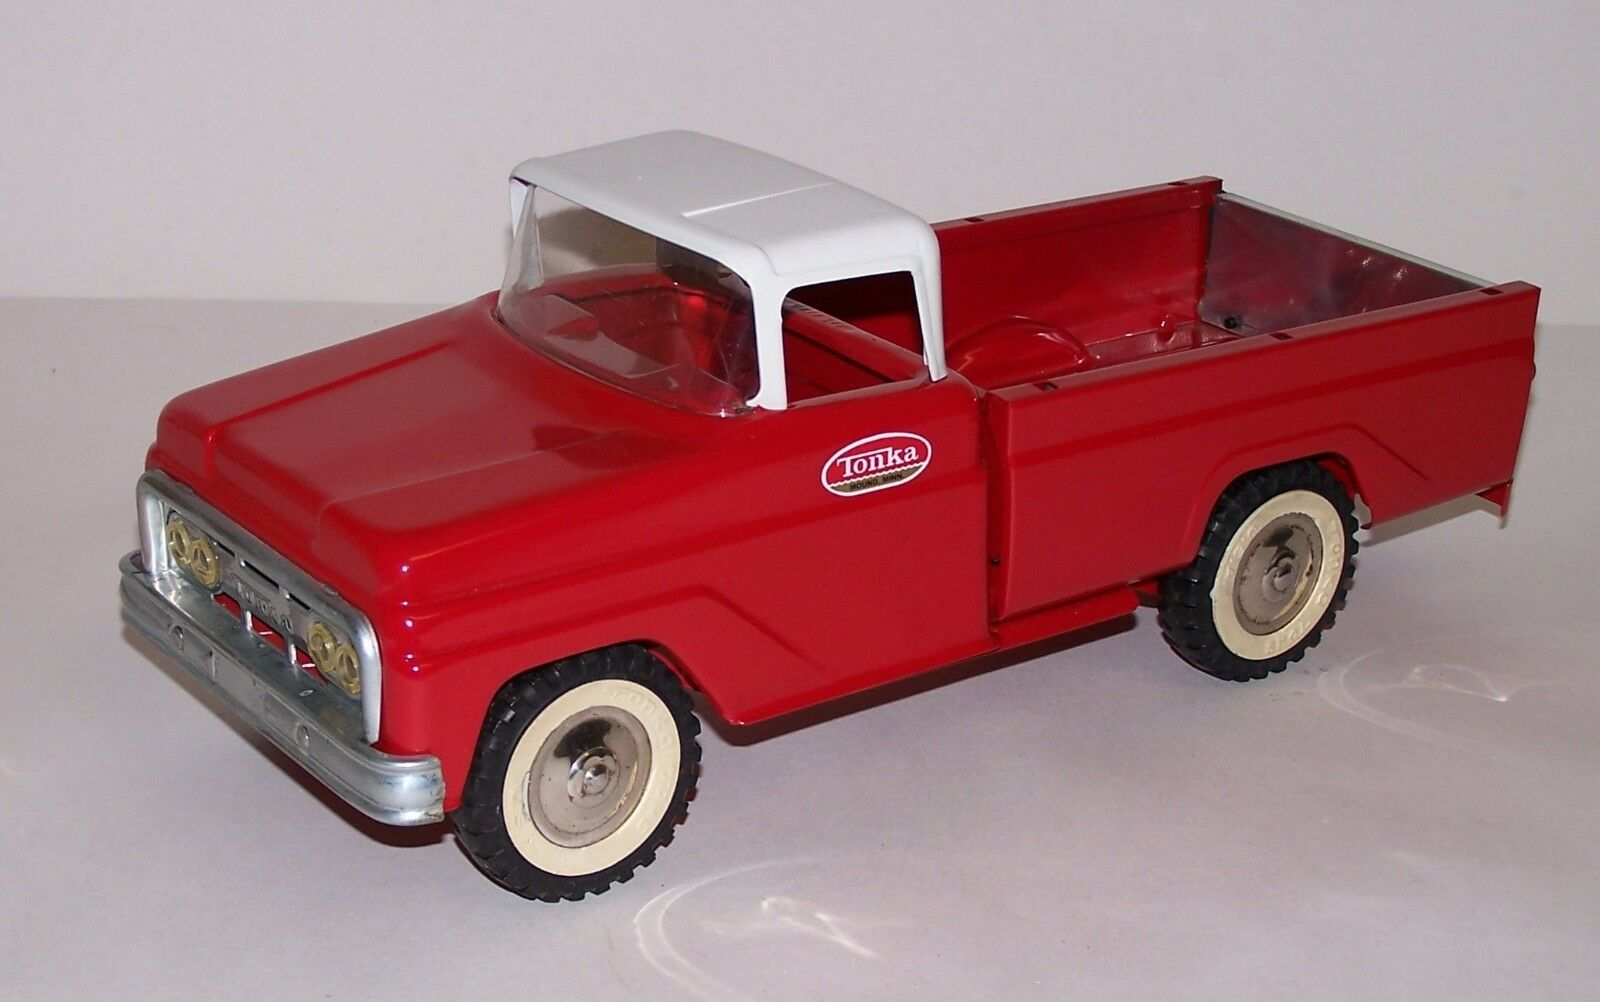 Tonka Toys '62-'63 Pickup Truck Restorosso Practically New Pressed Steel